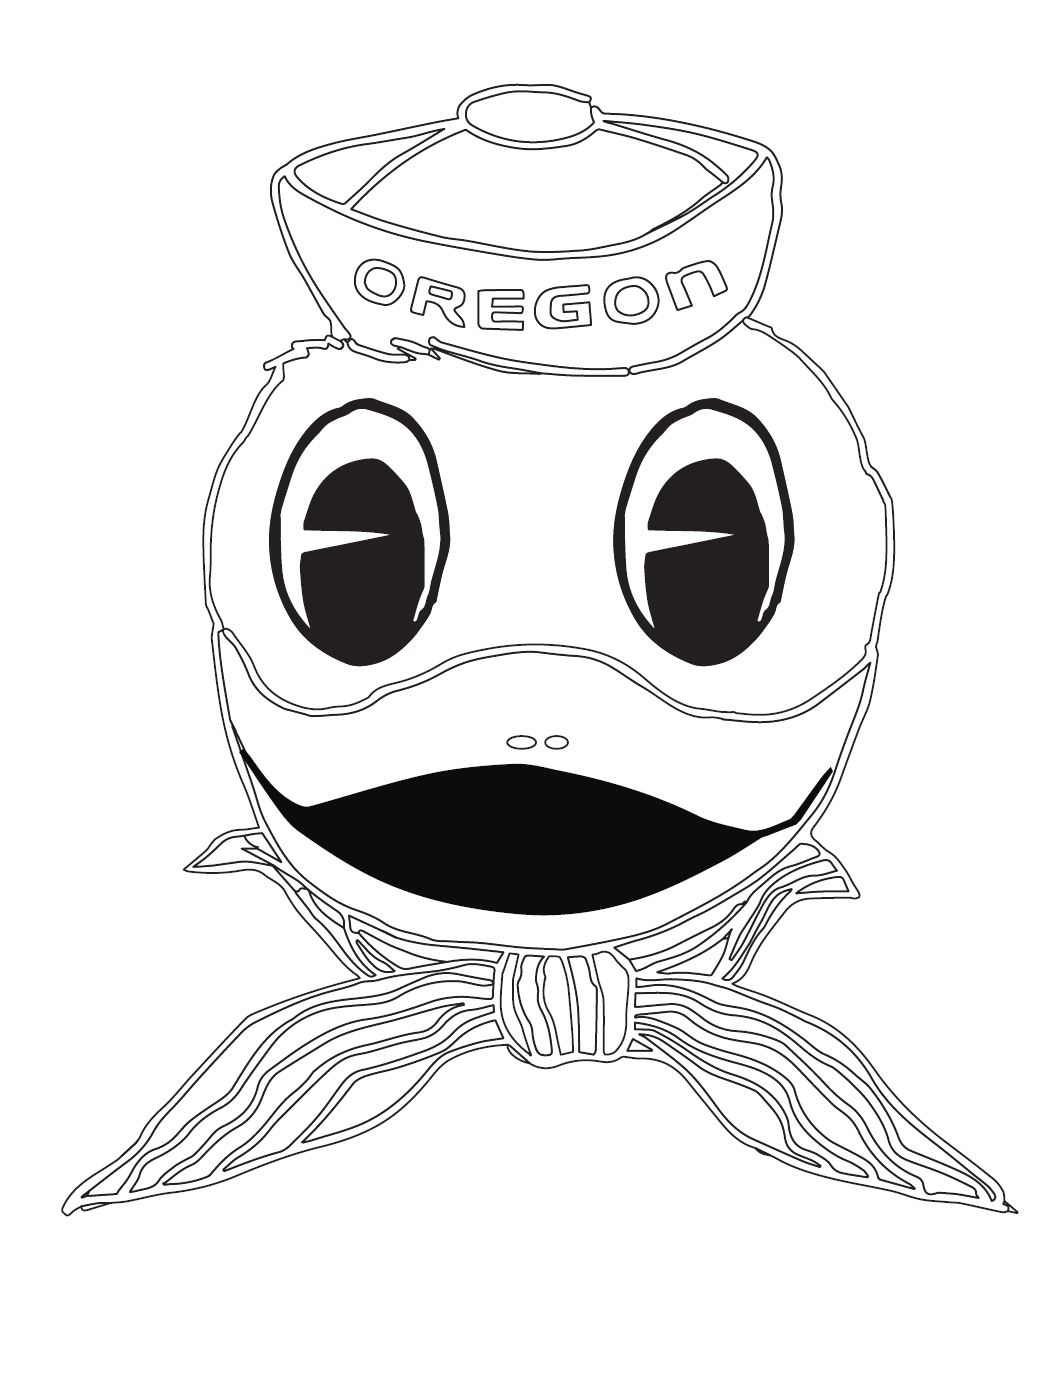 oregon ducks drawing at getdrawings com free for personal use